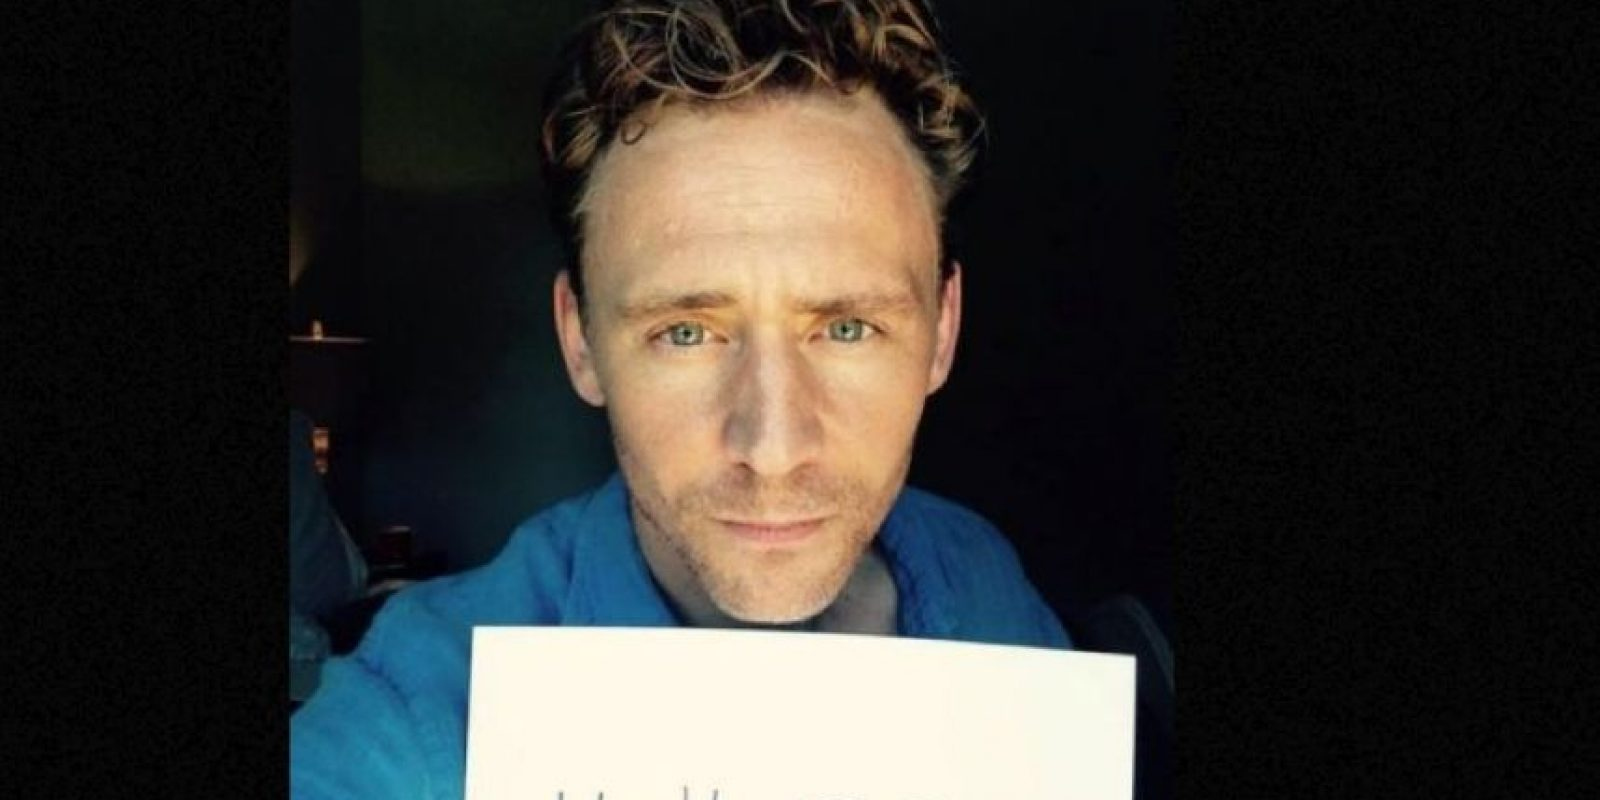 O Tom Hiddleston. Foto: Twitter